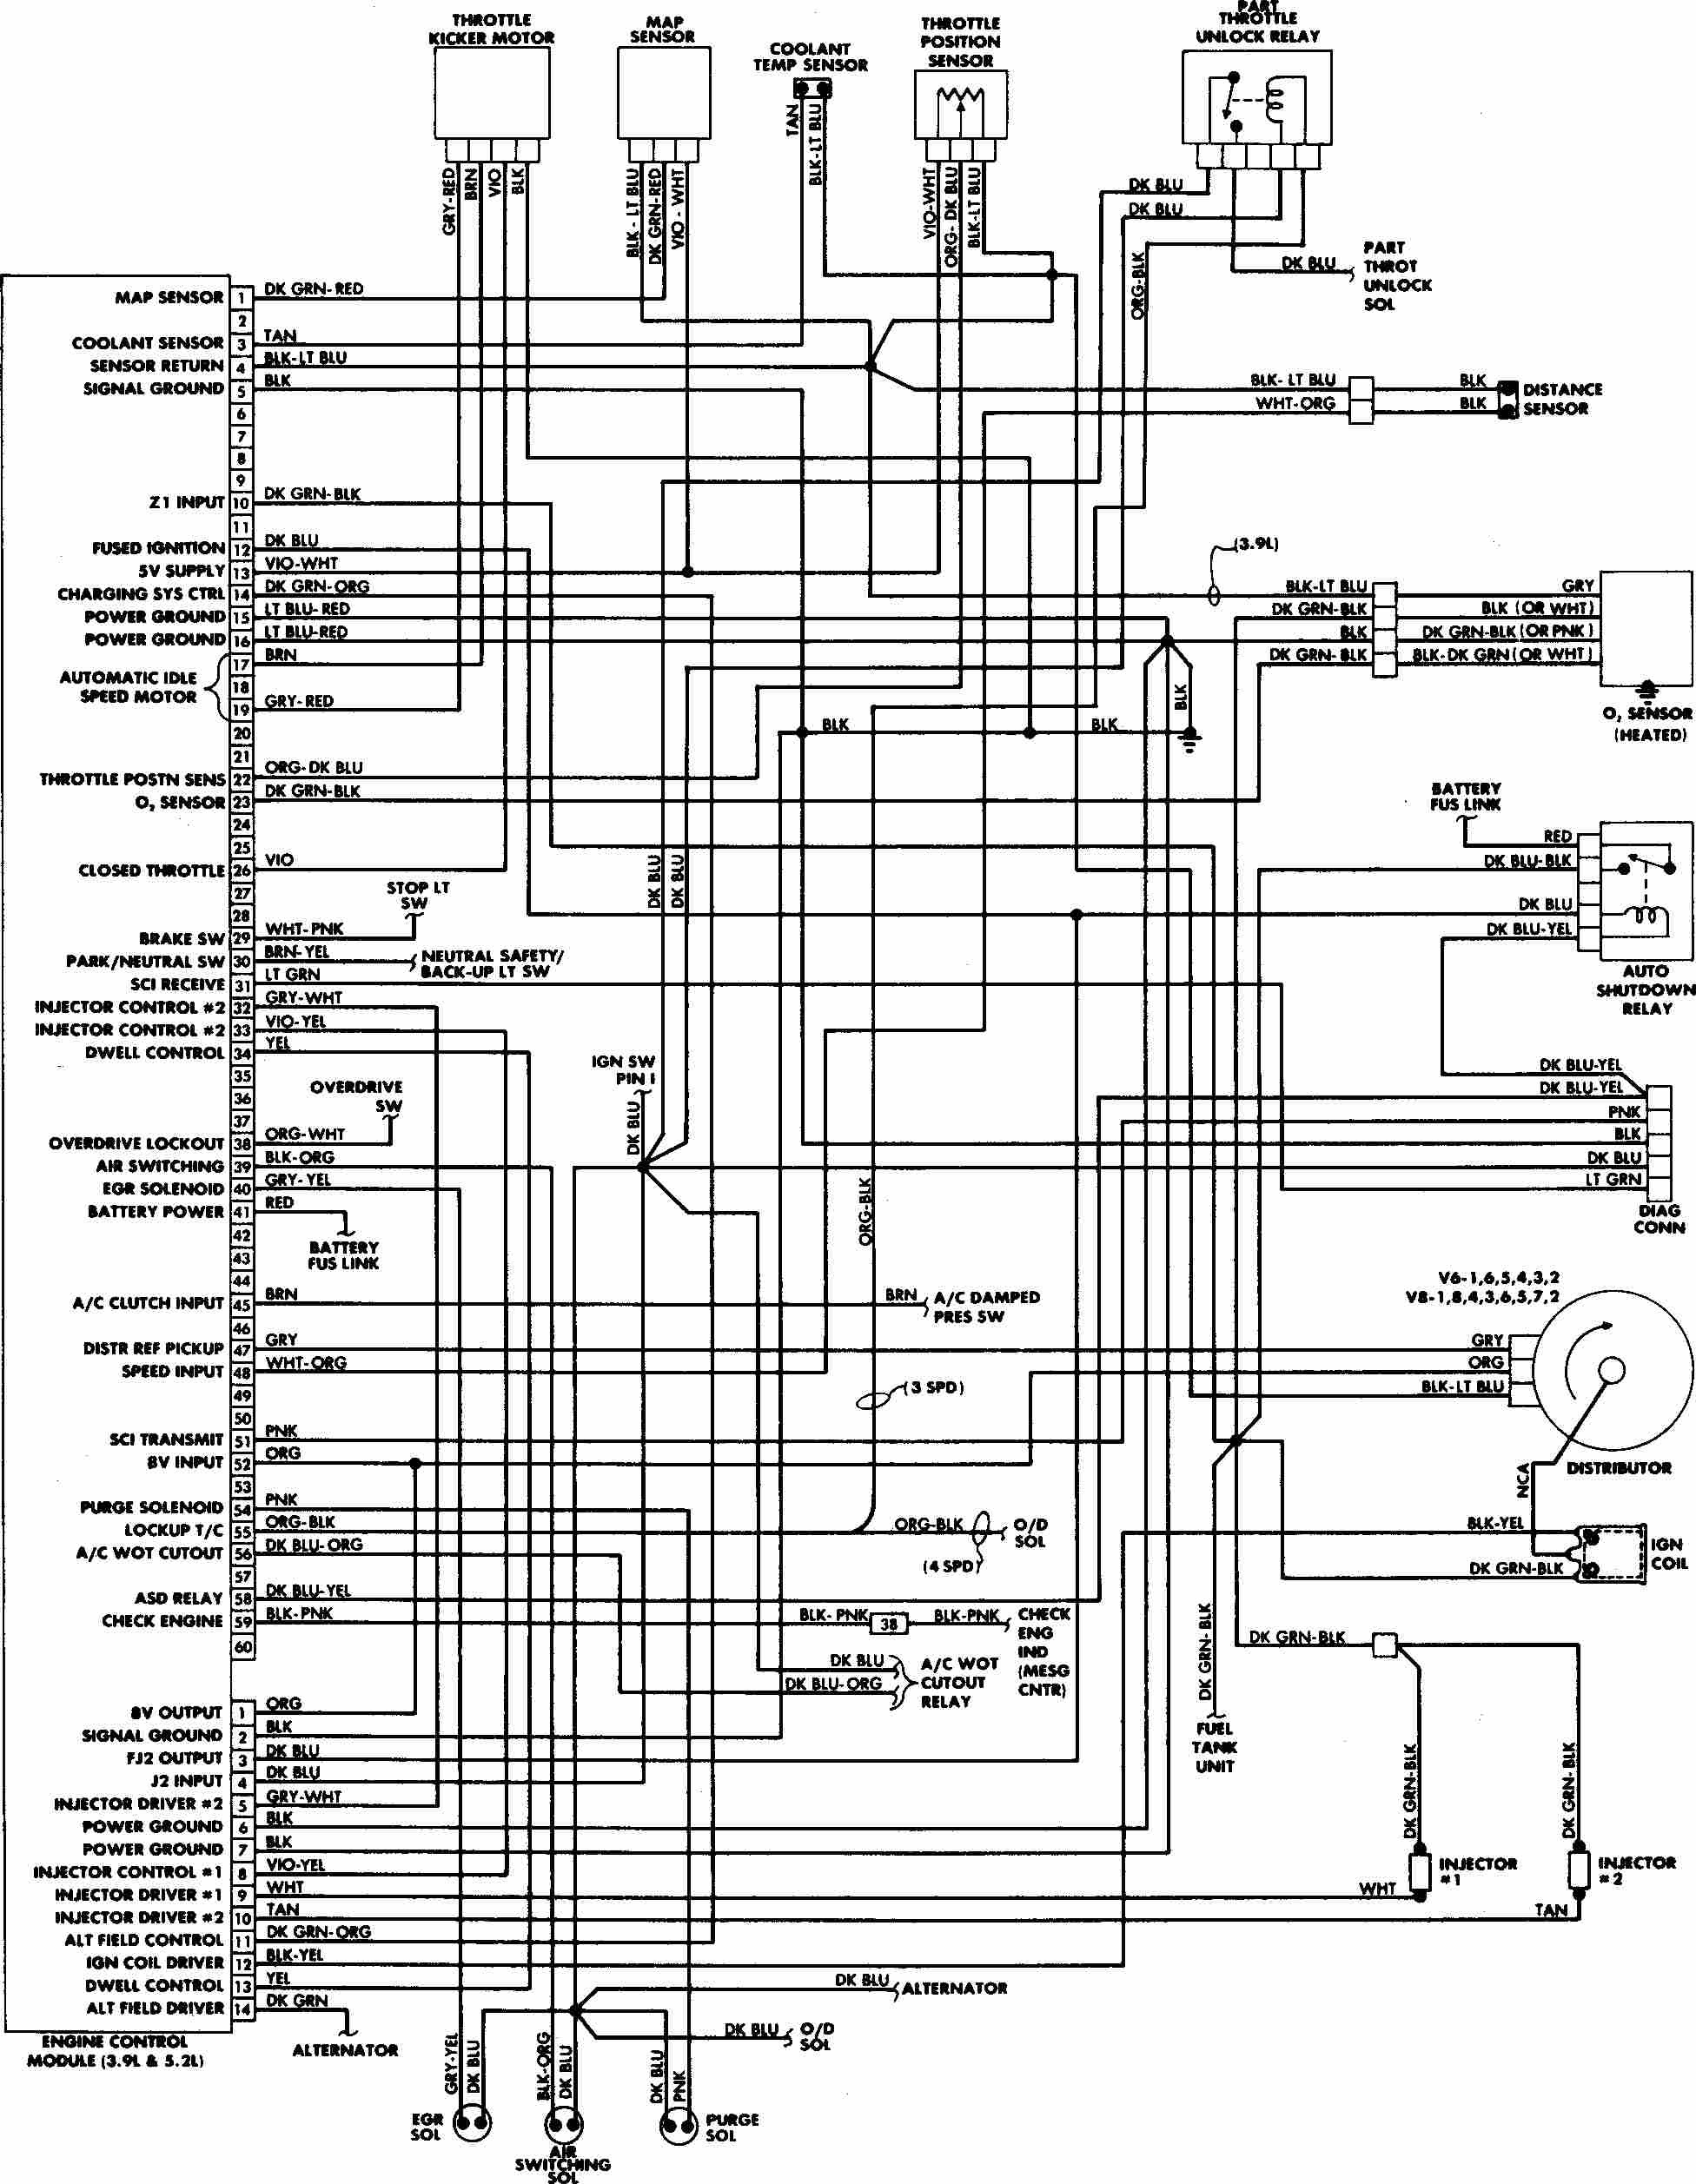 2007 dodge ram 1500 wiring harness diagram 2002 dodge ram 1500 rh kolnetanya